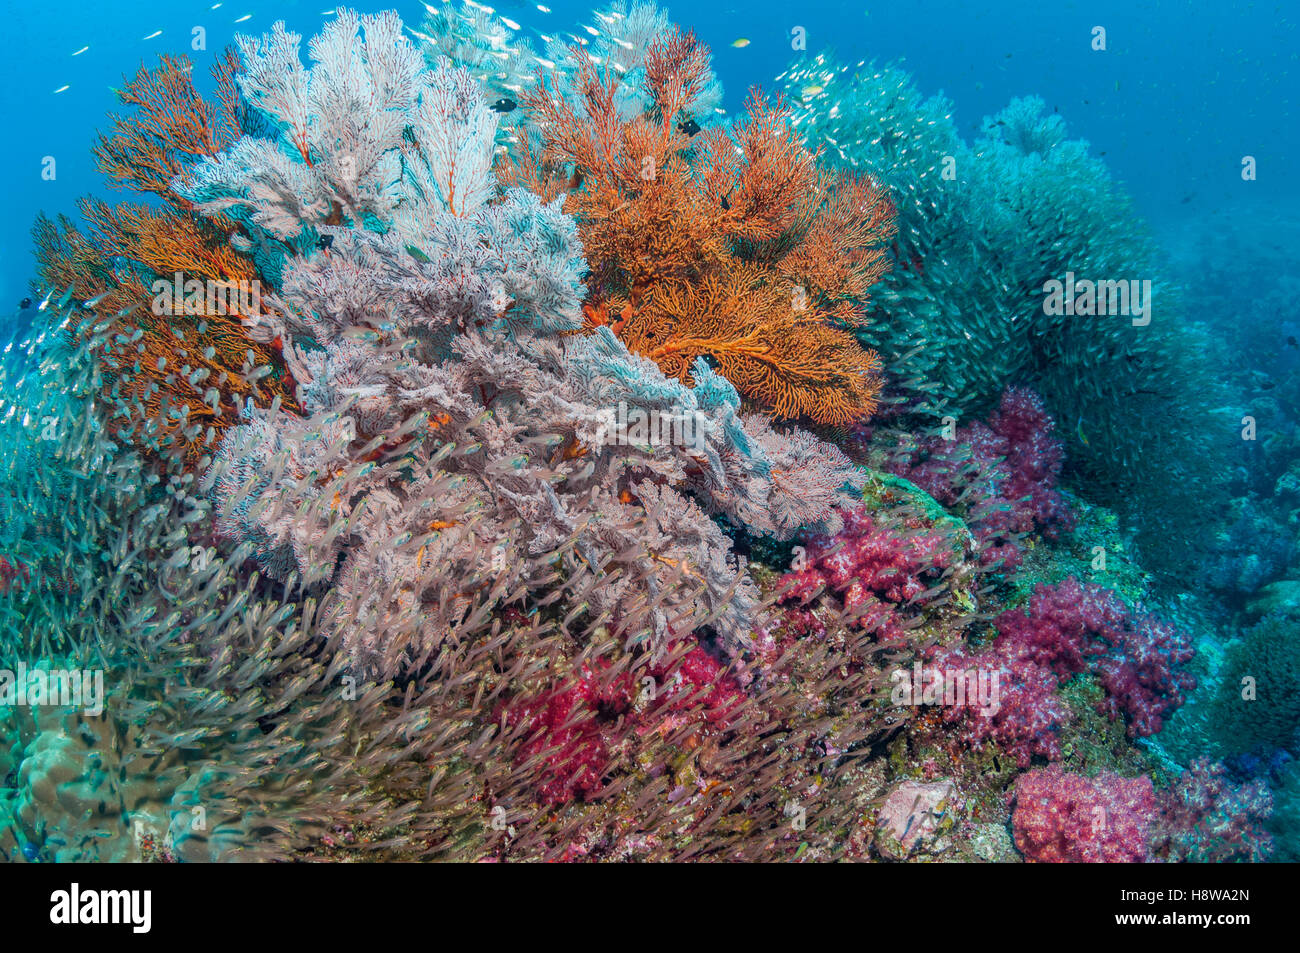 Gorgonian sea fans [Melithaea sp.] and soft corals [Dendronephthya sp.] with a large school of Pygmy sweepers - Stock Image